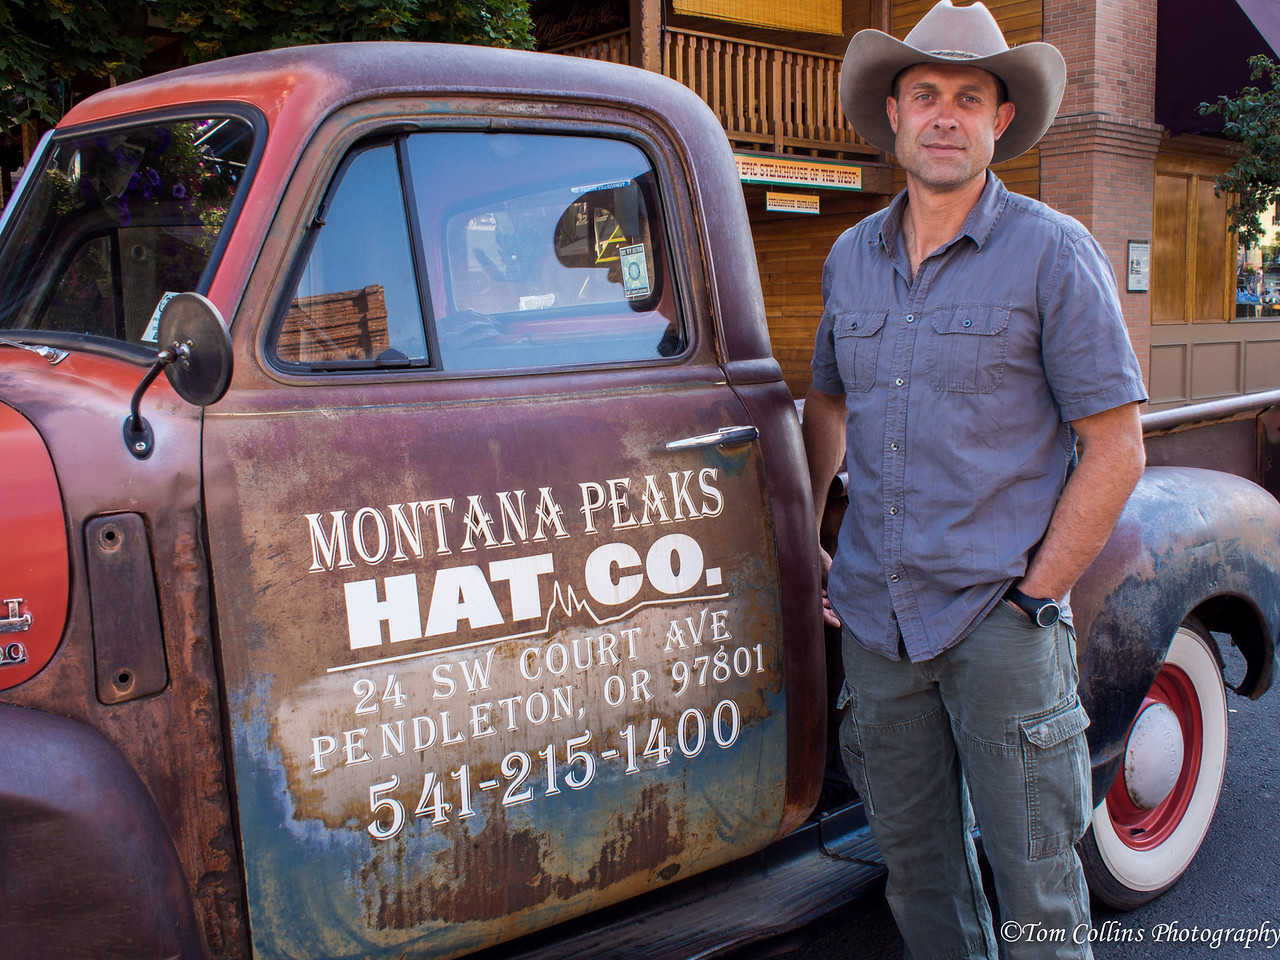 The proprietors of the Montana Peaks Hat Company own and drive this truck back and forth to work everyday in downtown Pendleton, Oregon.  It is an absolute beauty inside and out.  Some might think to have it restored and brought back to new, but the engine is like new as is the suspension and given the nature of their business and where they are, this is pretty perfect just like it is.  Of course George wanted to buy it from them but they weren't considering it.